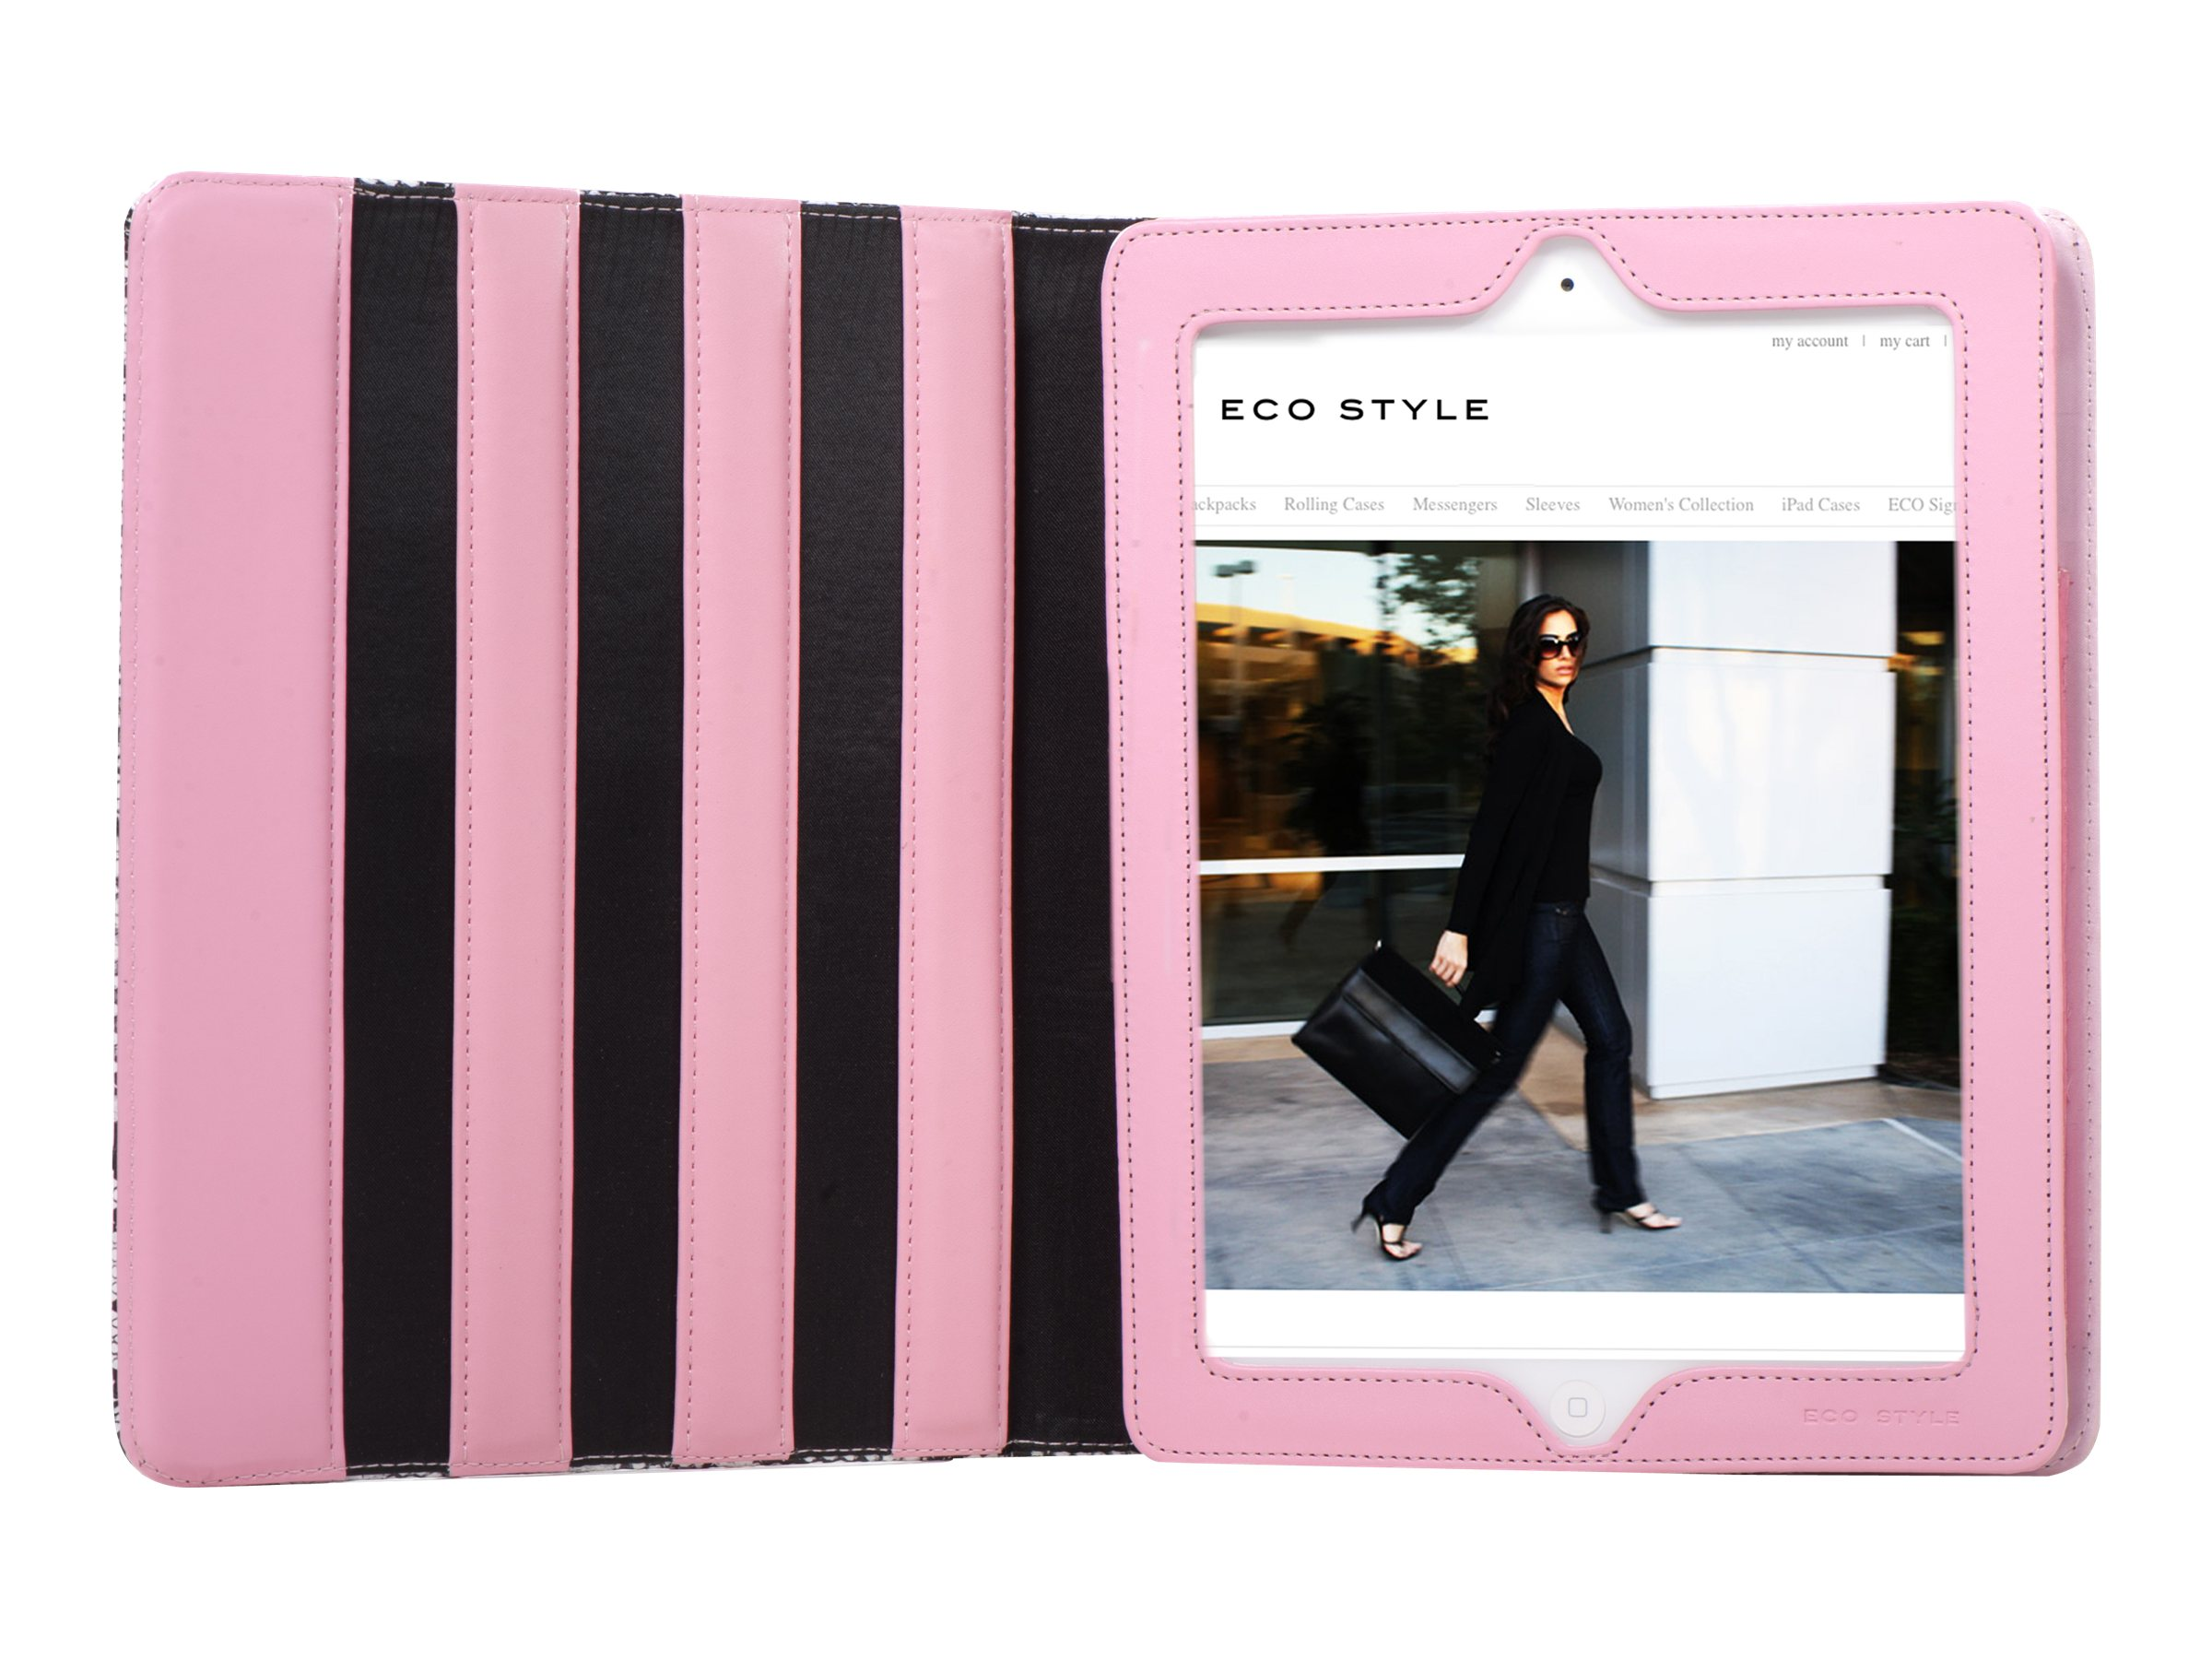 Eco Style Saigon iPad 2 Case, Black White Pink, ESAI-BW10